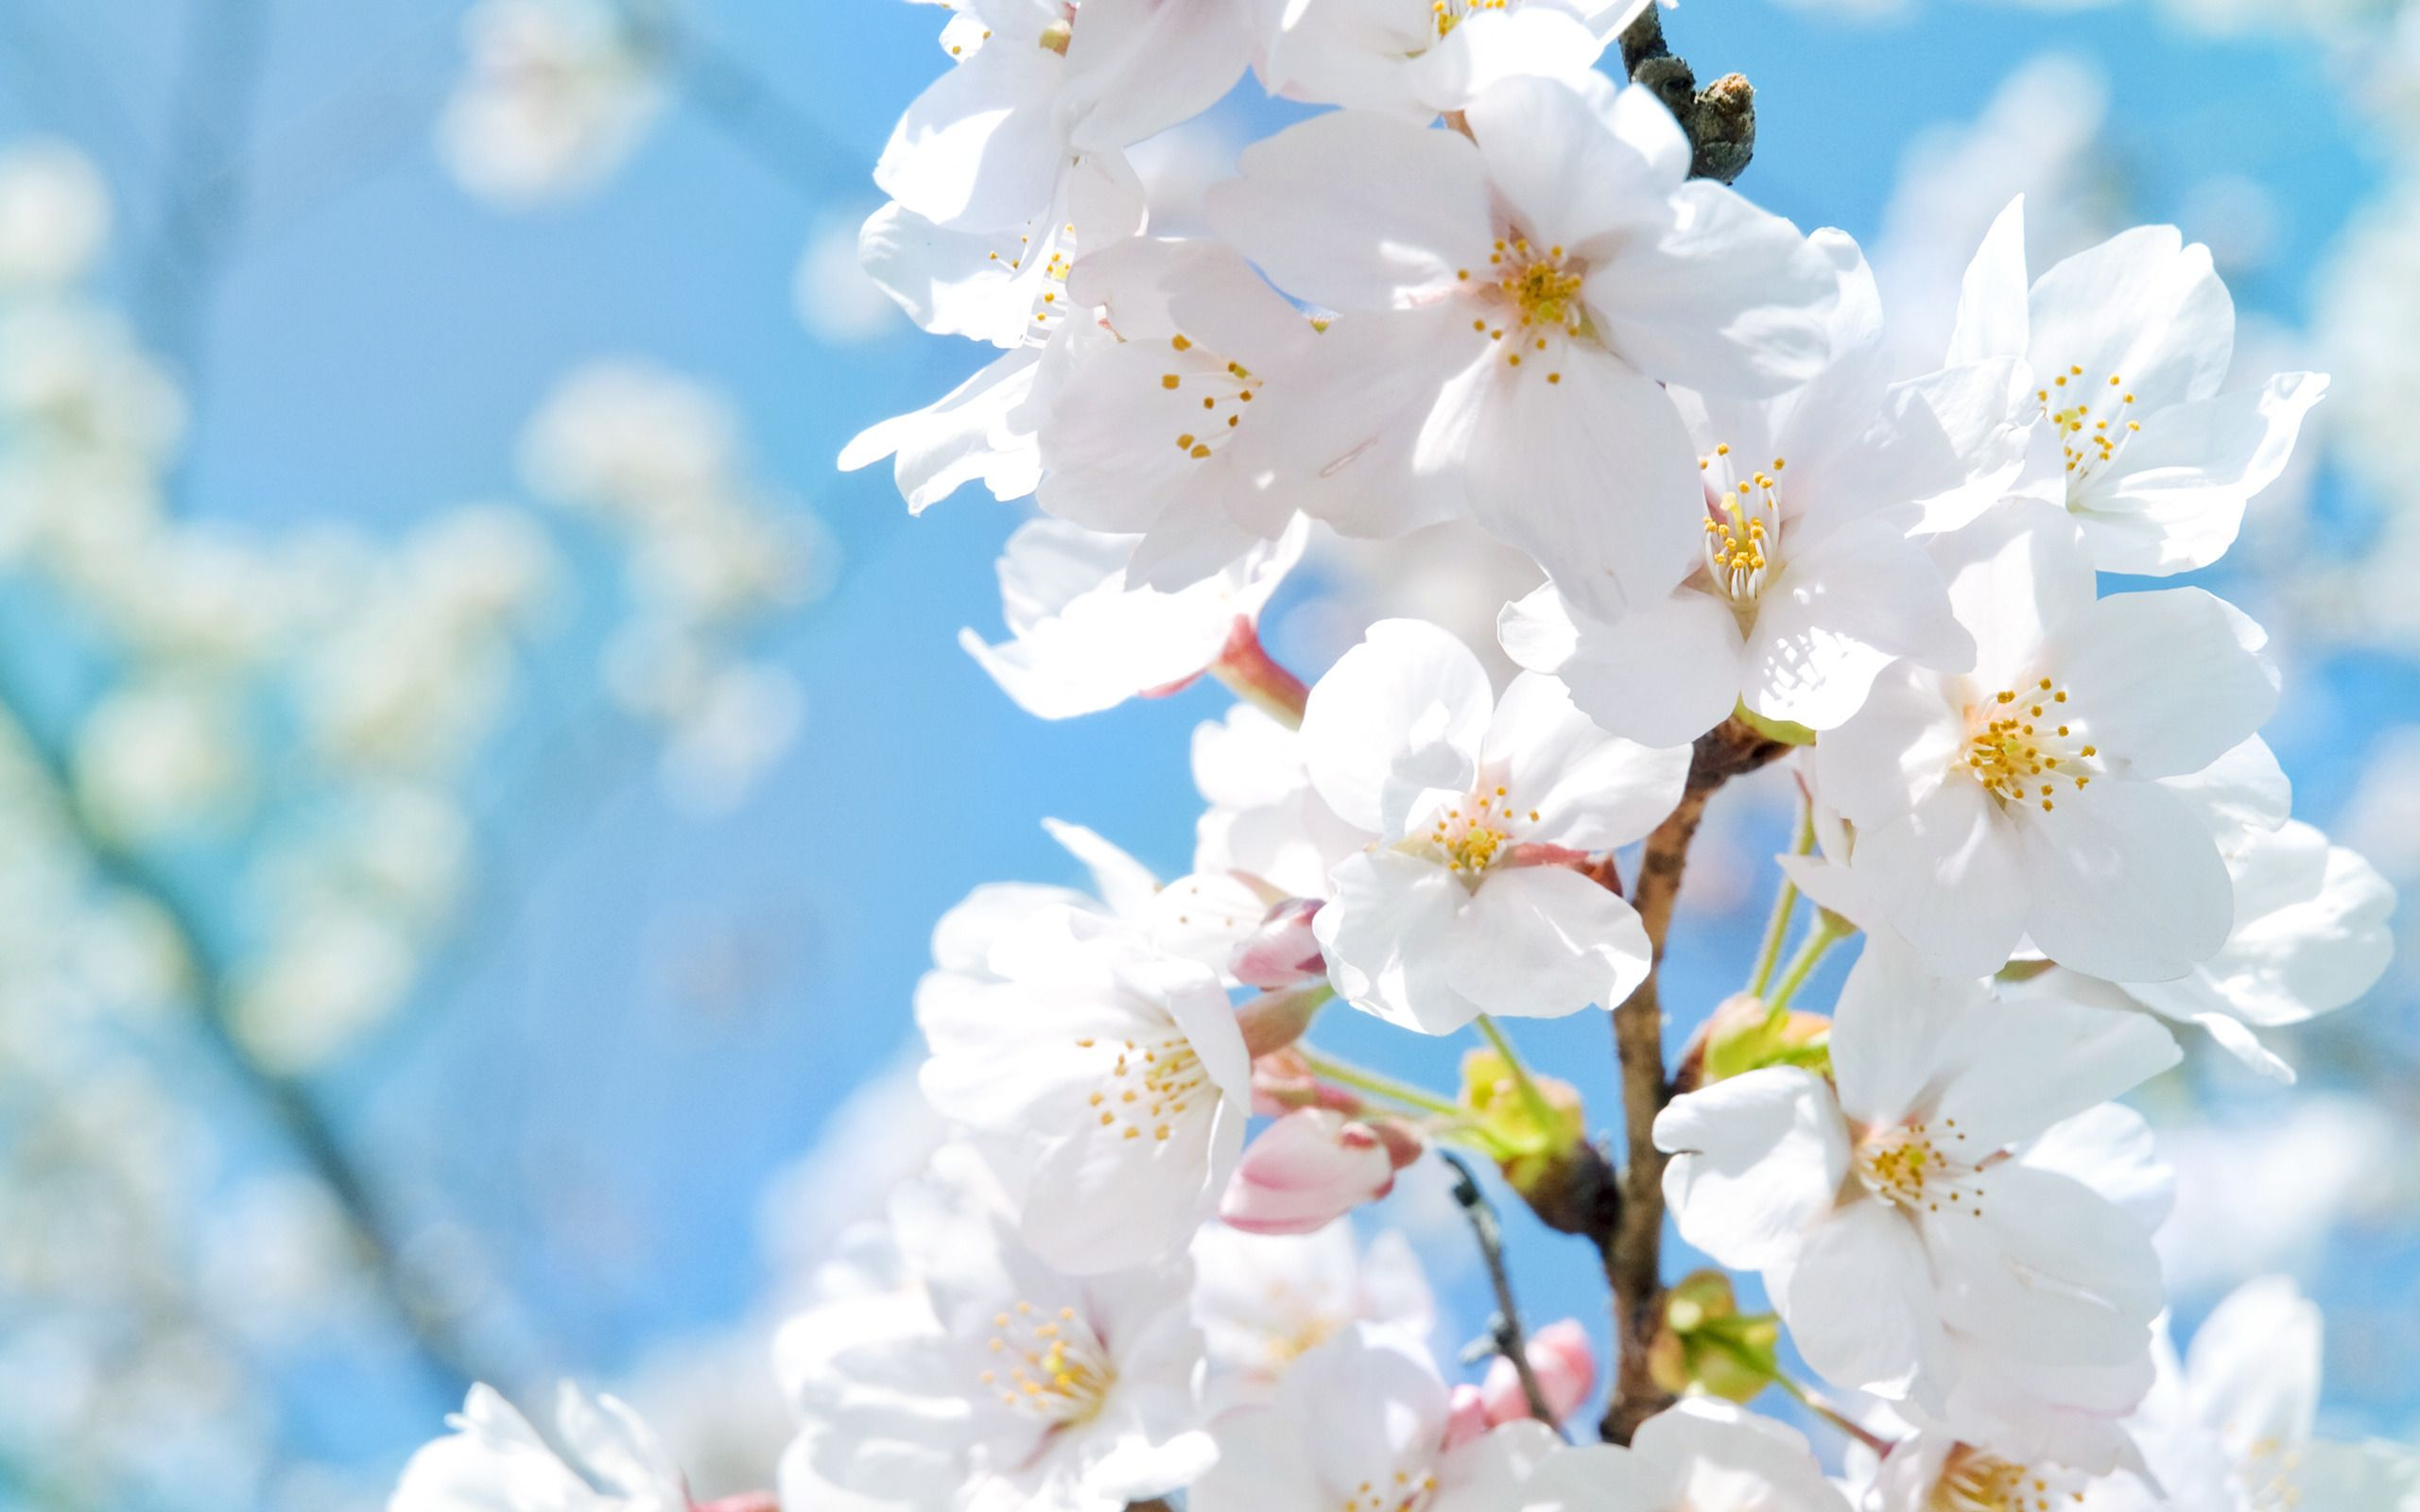 White flowers images hd bestpicture1 white flowers wallpaper for pc full hd pictures mightylinksfo